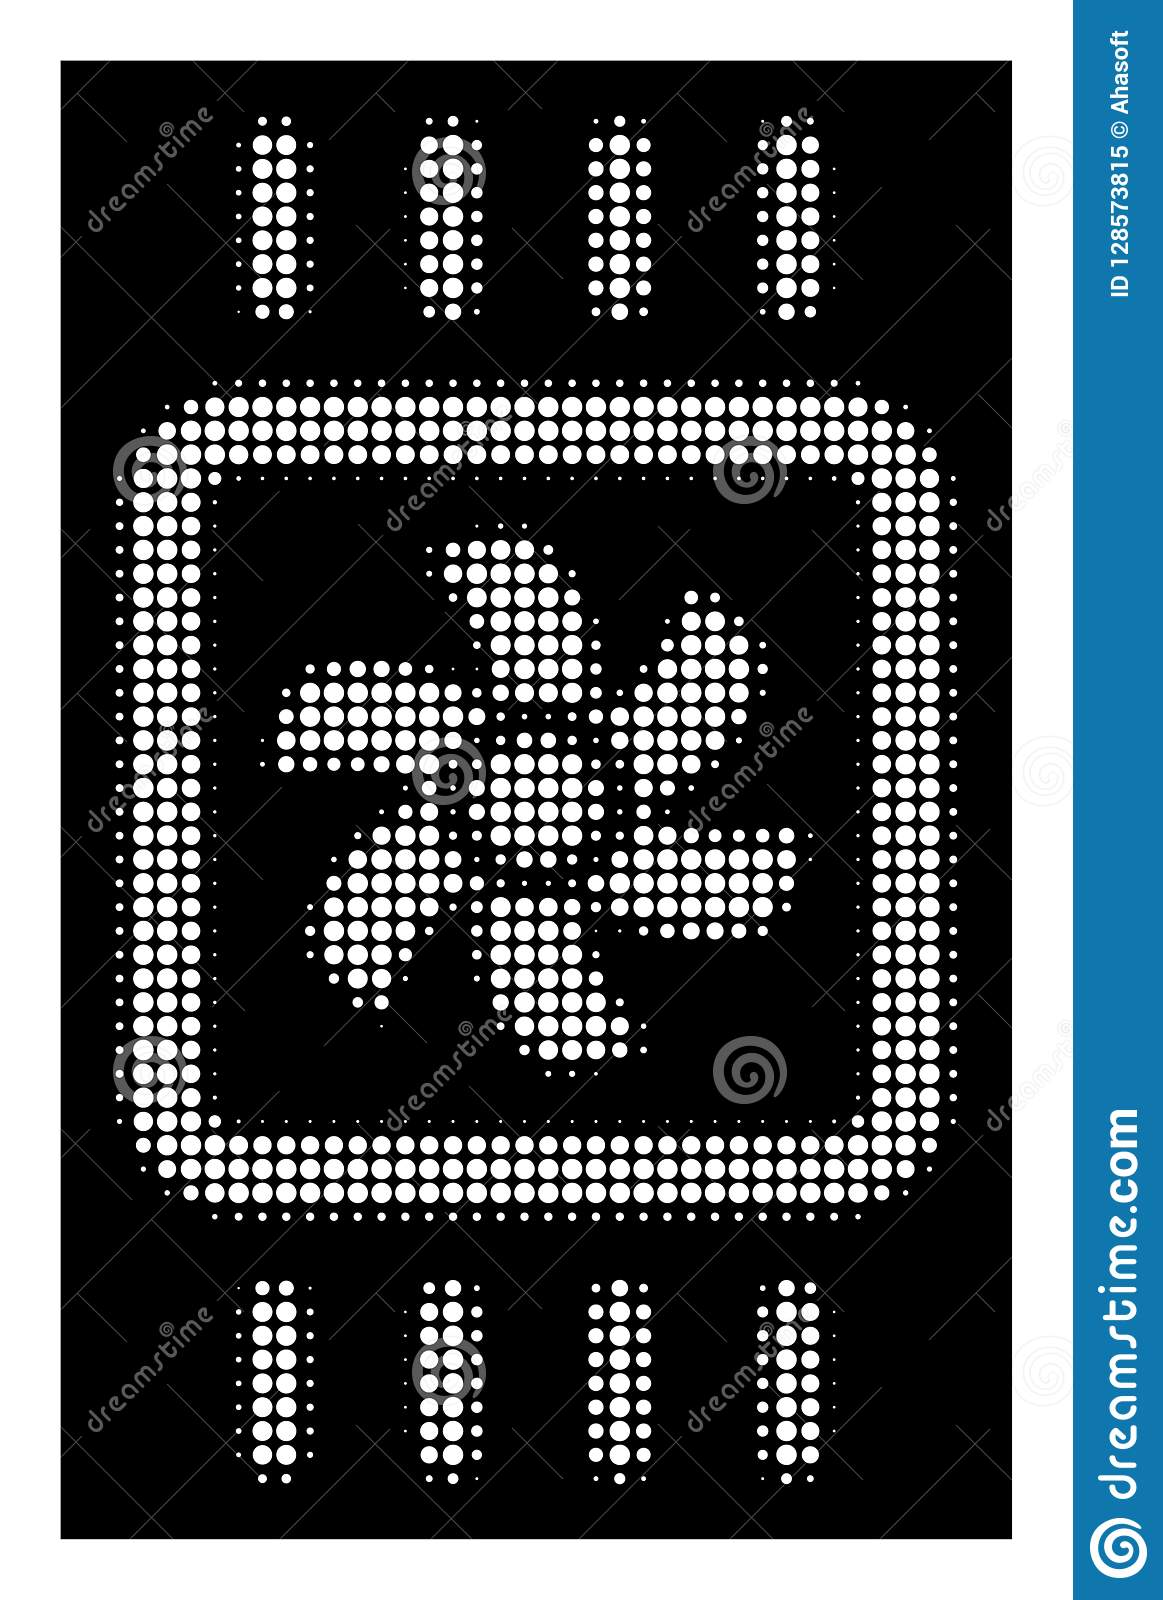 White pictogram with pixelated geometric pattern on a black background vector chip cooling icon constructed of round points